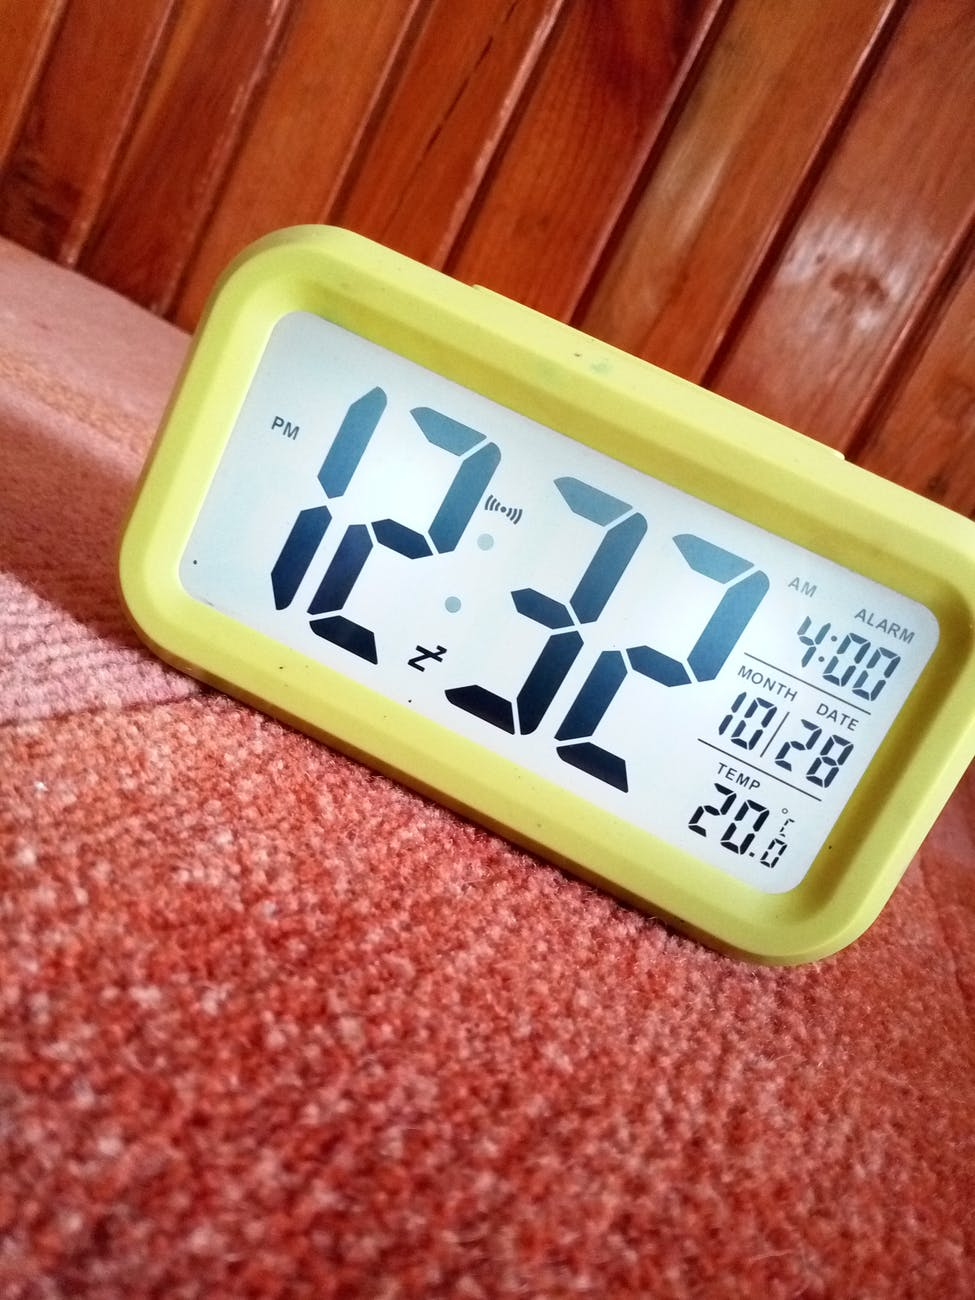 close up photography of yellow alarm clock